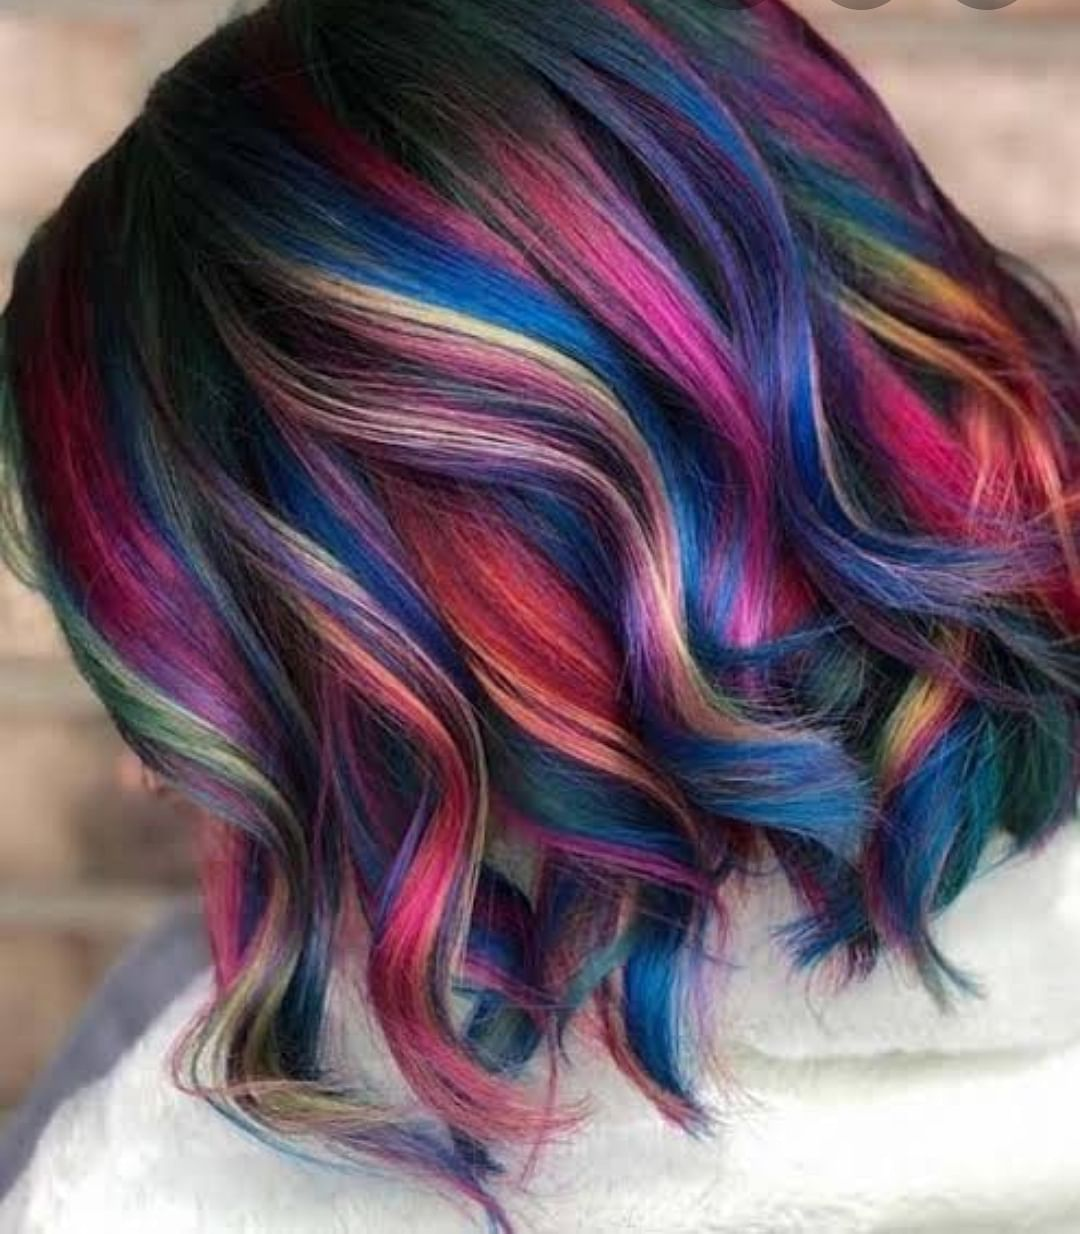 5 Side Effects Of Hair Dye You Should Know